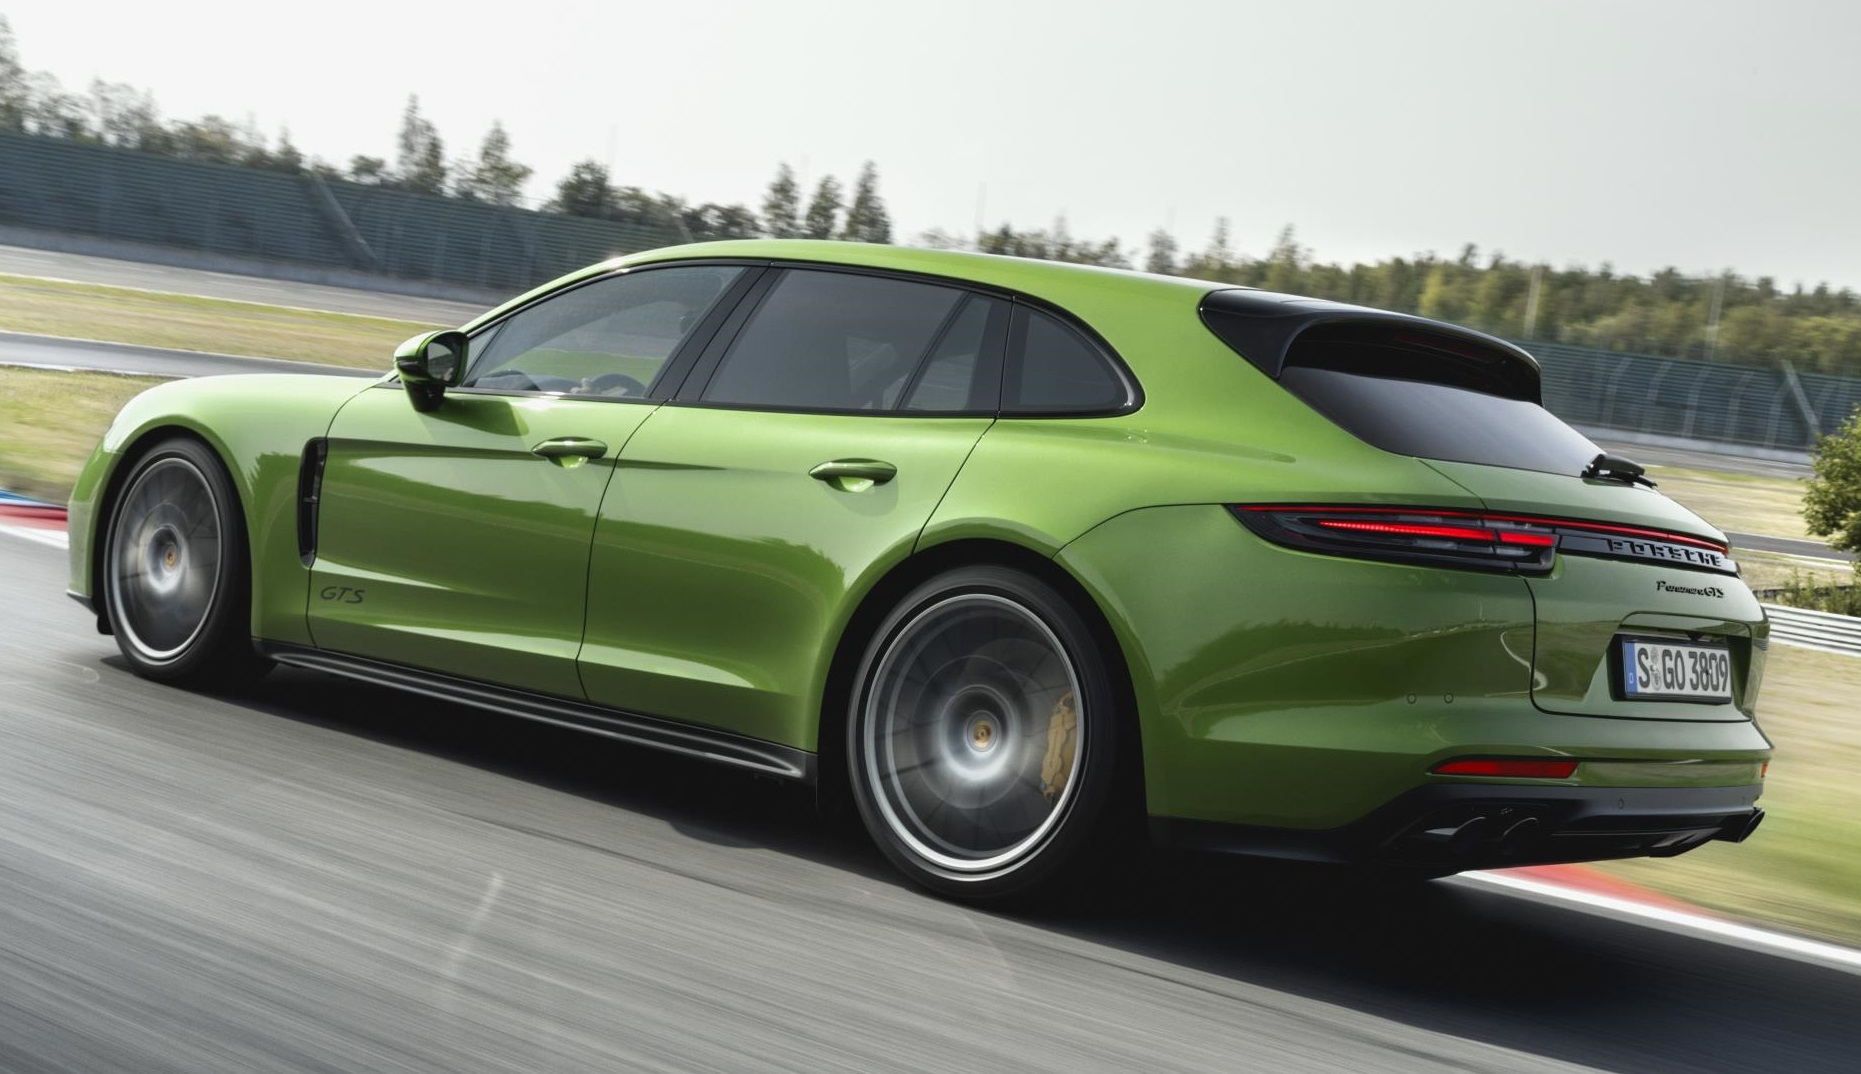 The New Porsche Panamera Gts And Panamera Gts Sport Turismo Starts At 128300 Meanwhile Its More Practical And Some Would Say Sexier